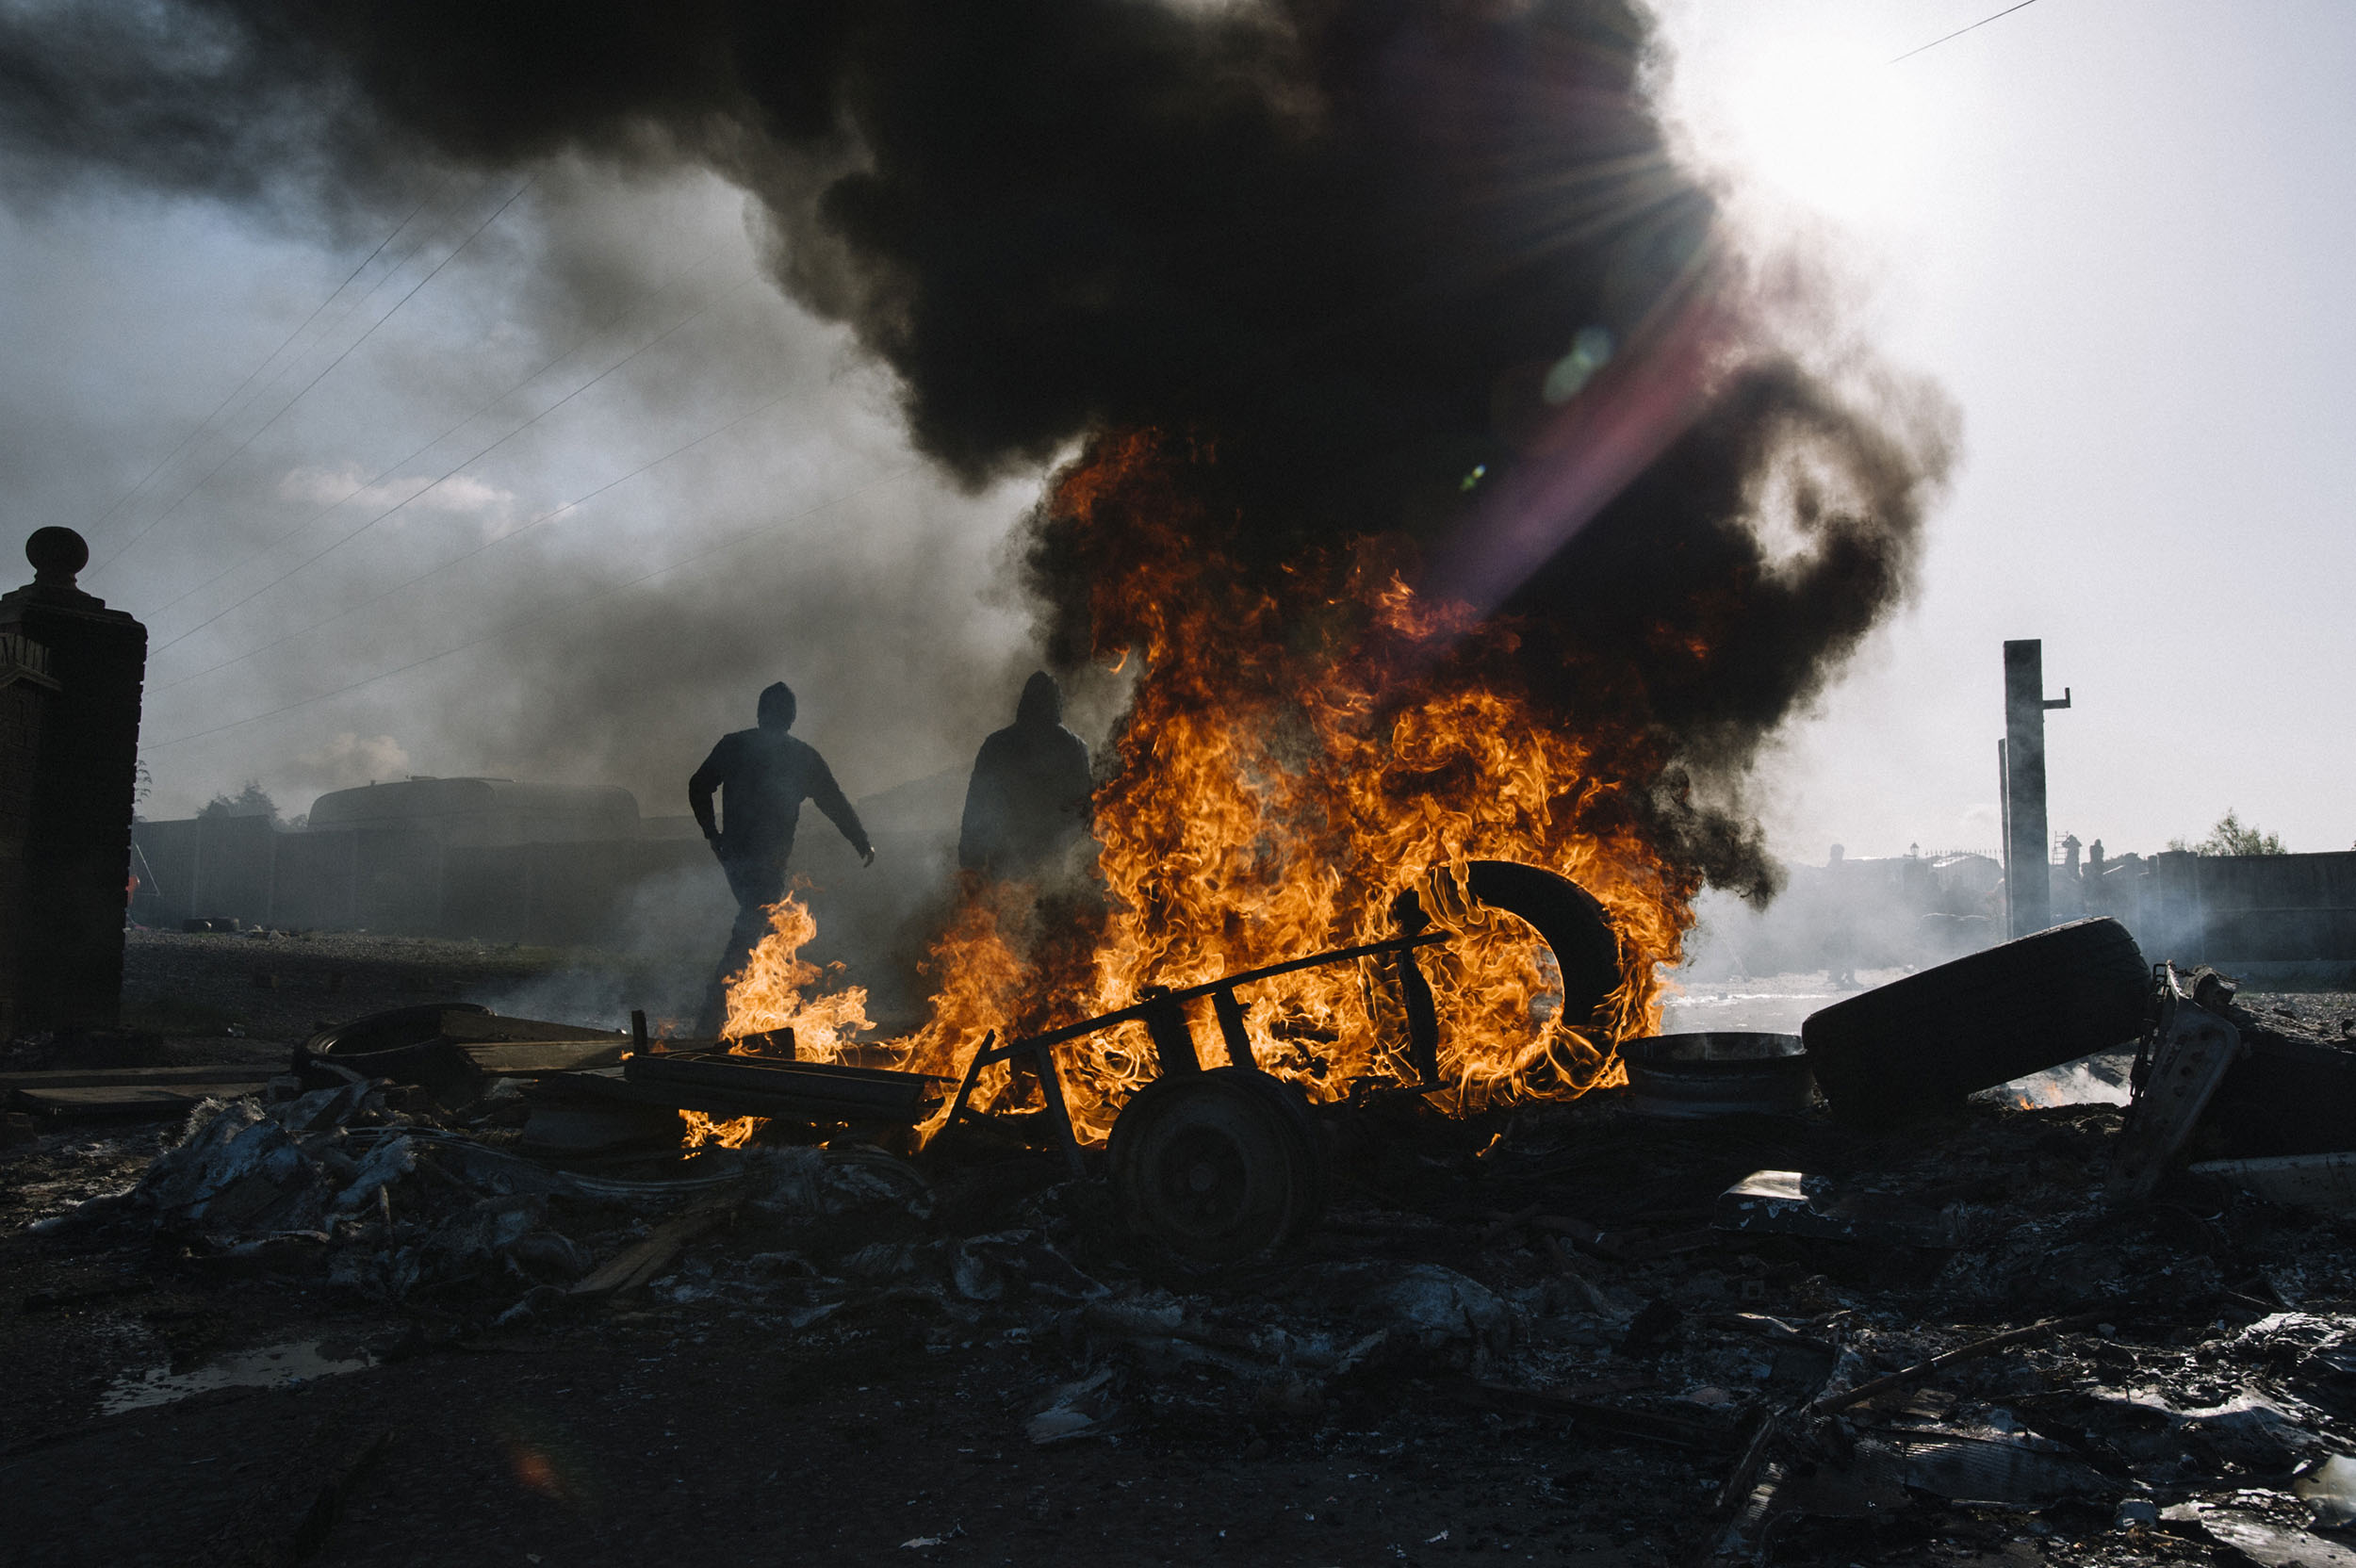 Activists attempt to hold police and bailiffs at bay. They set fire to existing barriers.